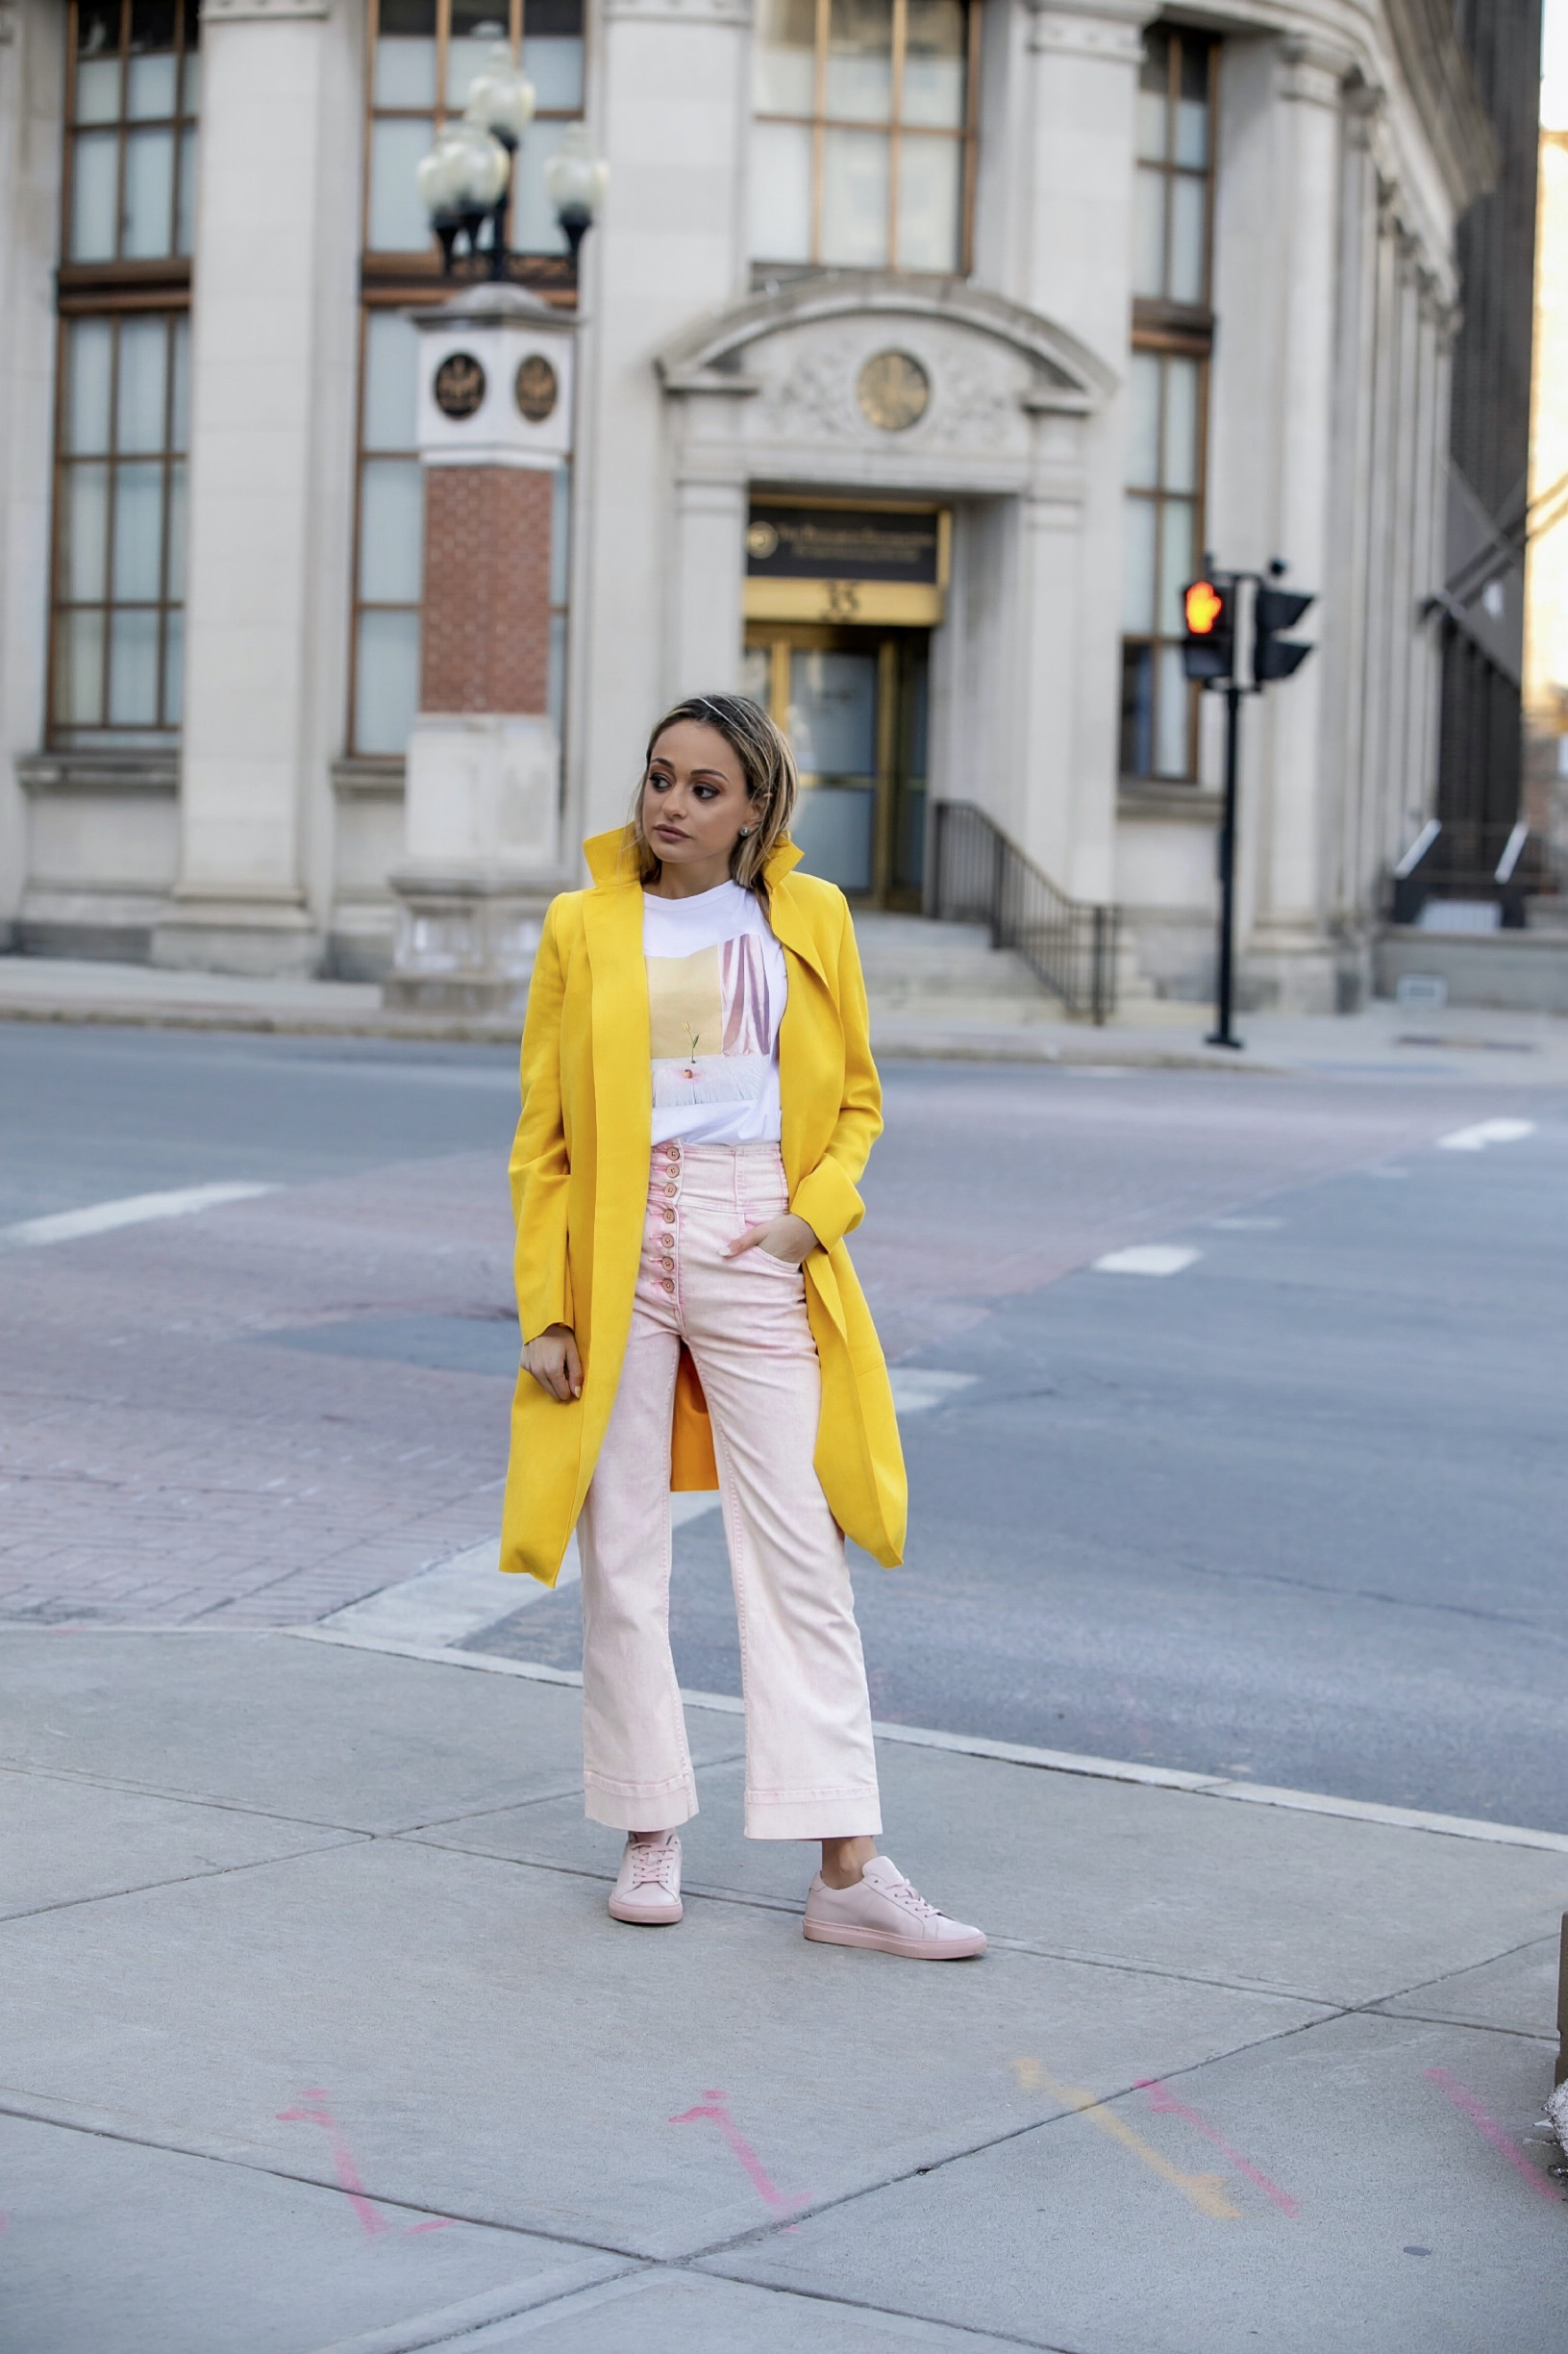 spring streetstyle in pink and yellow